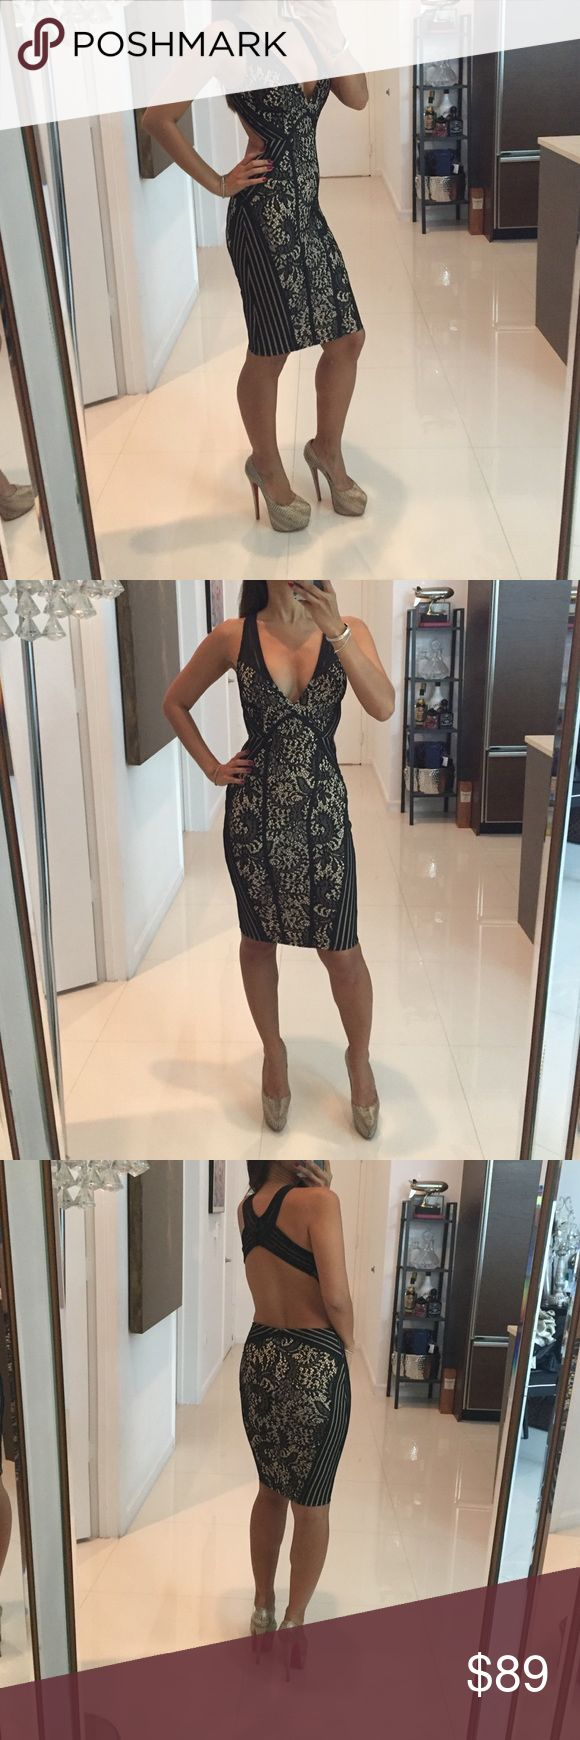 Beautiful Black Laced and Nude Cocktail Dress S The details and lines of this dress is spectacular!! 👌🏼 Dresses